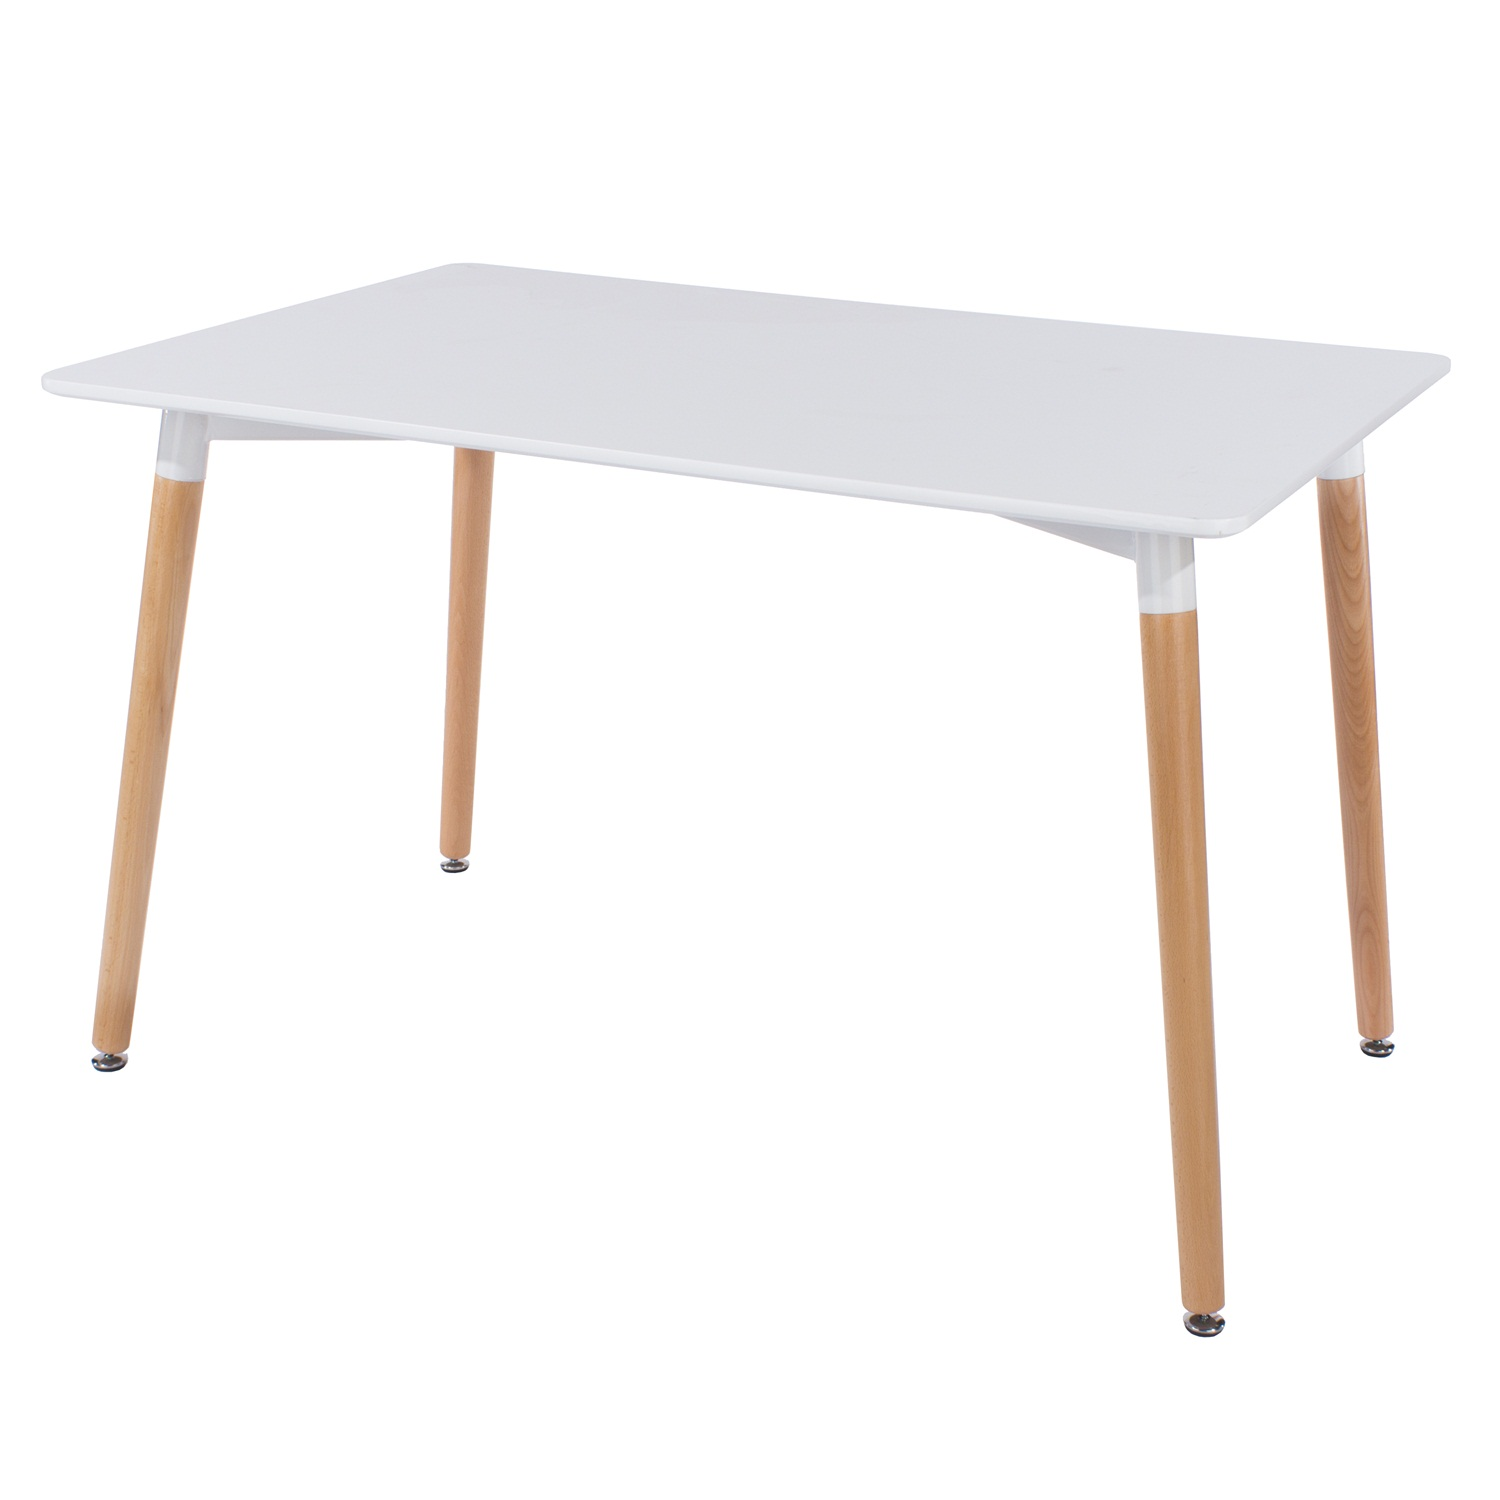 large rectangular table with wooden legs, white